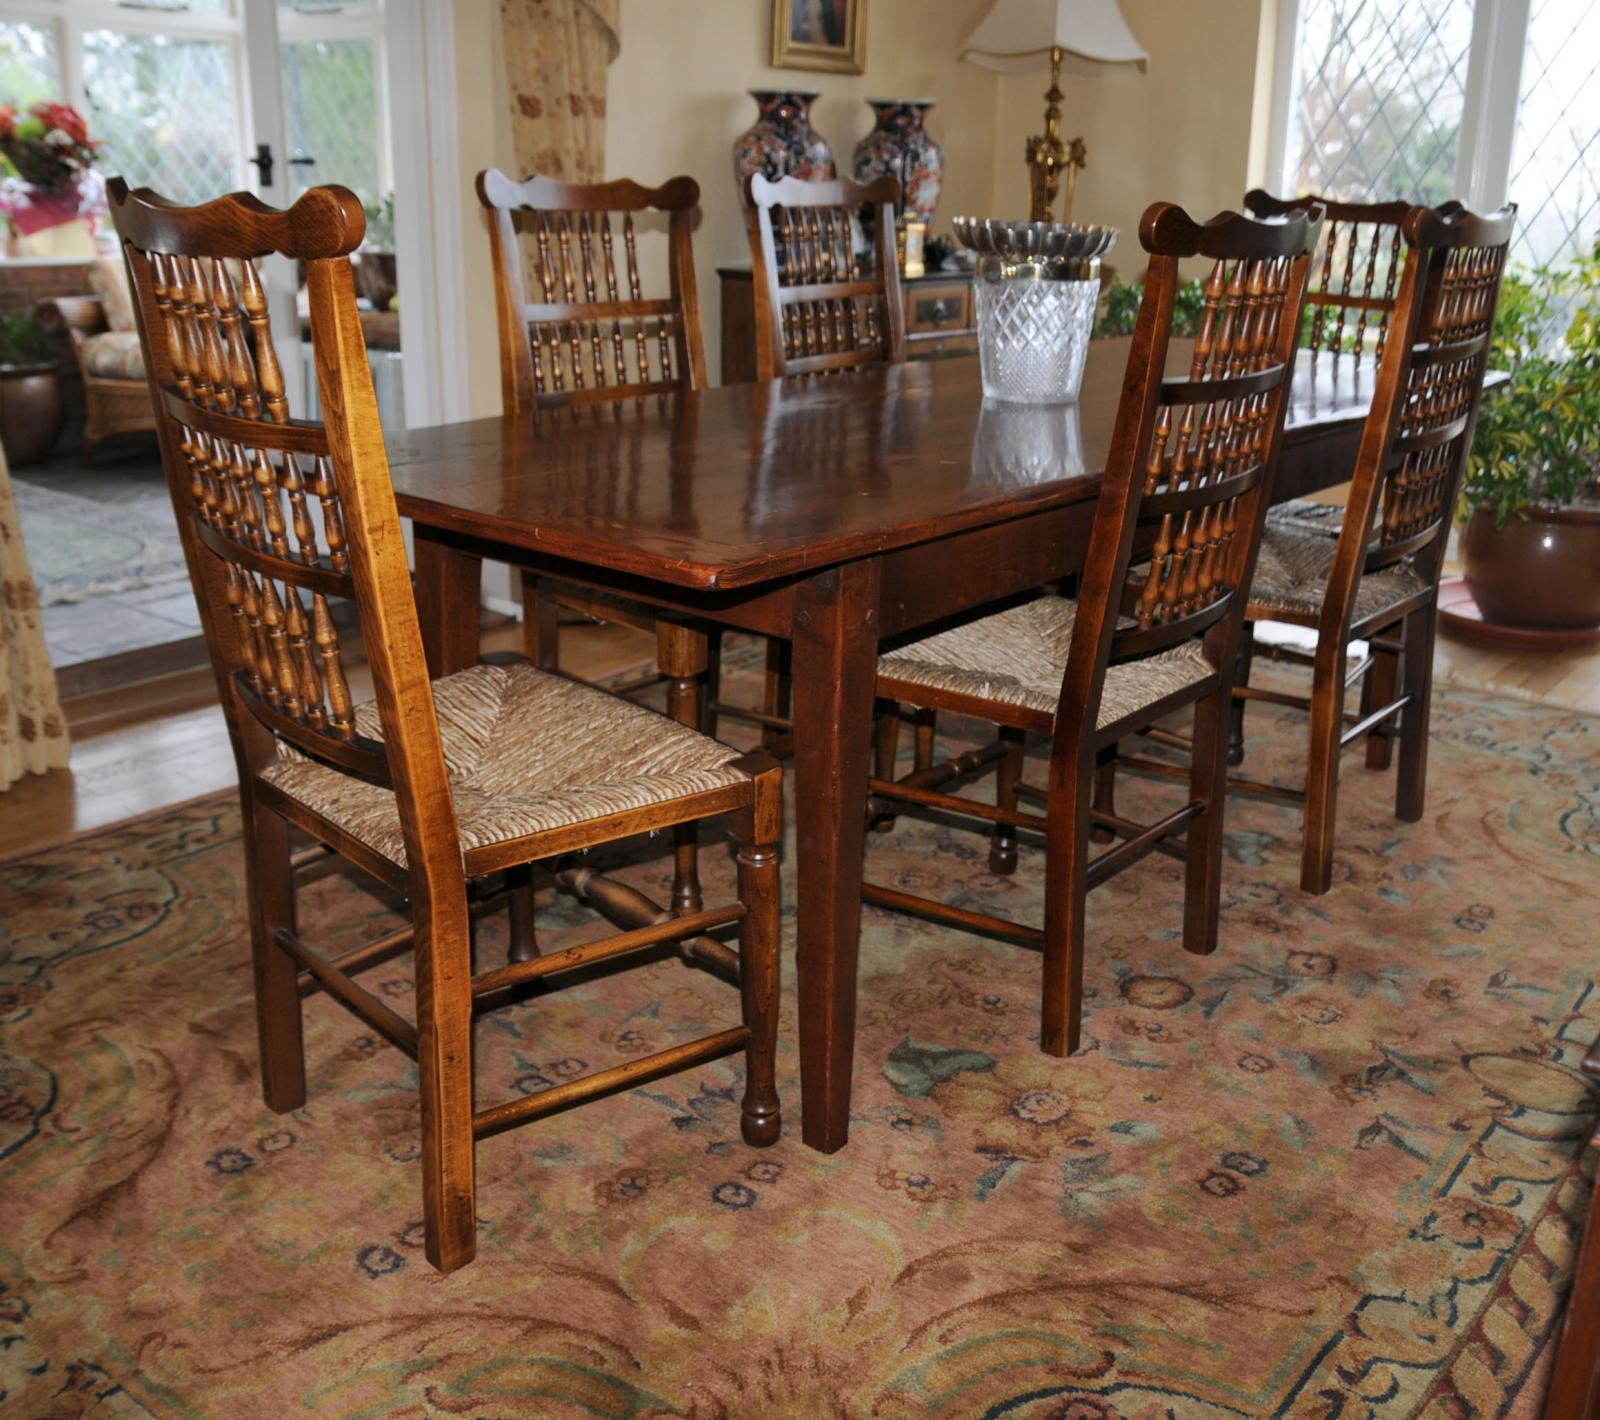 Oak Kitchen Table Set: Oak Kitchen Dining Set Refectory Table Spindleback Chairs Set